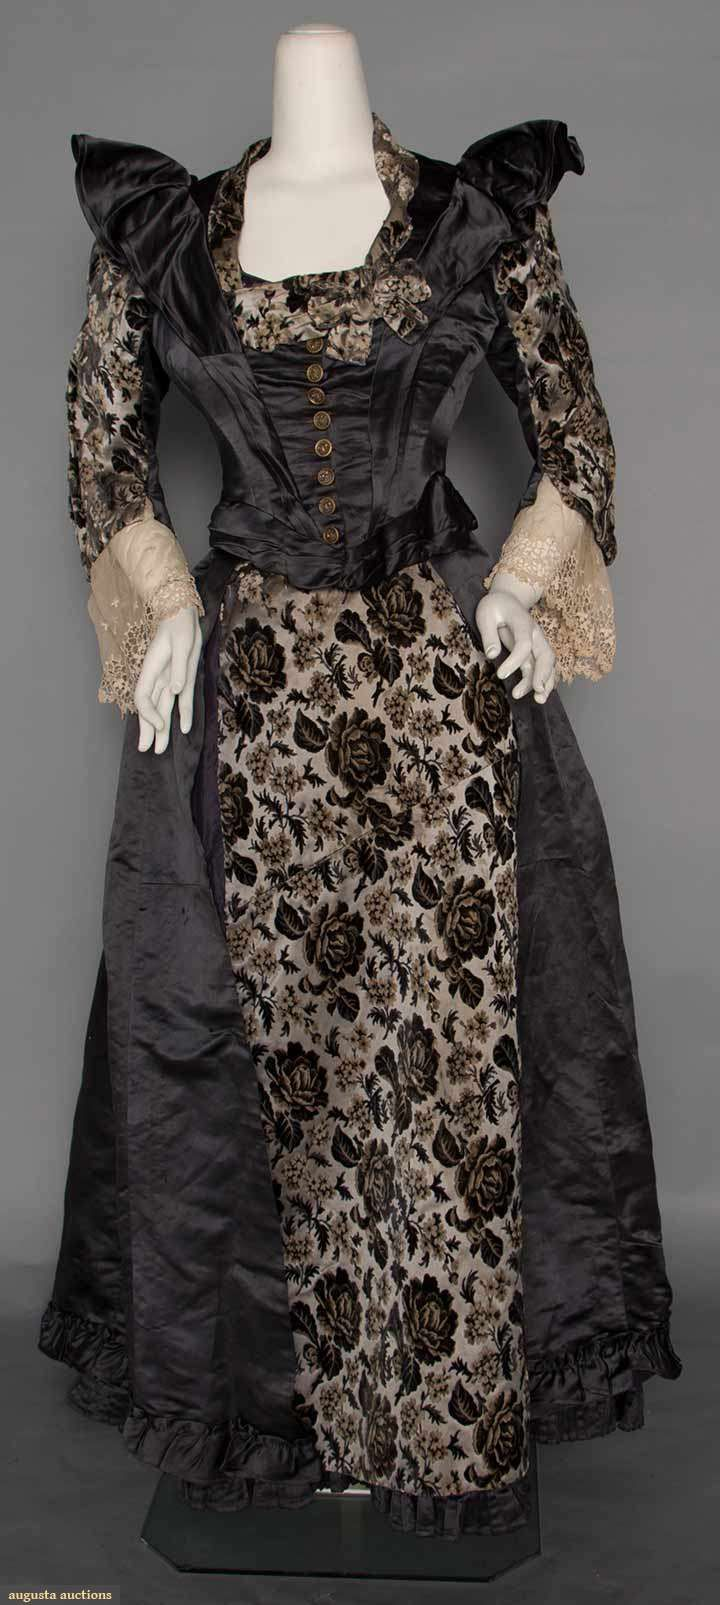 "CUT VELVET DINNER GOWN, c. 1892 2-piece, dark grey silk satin bodice & trained skirt, grey & taupe floral velvet cut to silver-grey satin sleeves, trim & CF skirt panel, 3/4 sleeves w/ lace flounces, 9 CF brass buttons, B 37"", W 32"", Skirt L 39""-52"" Suddon-Cleaver Costume Collection"